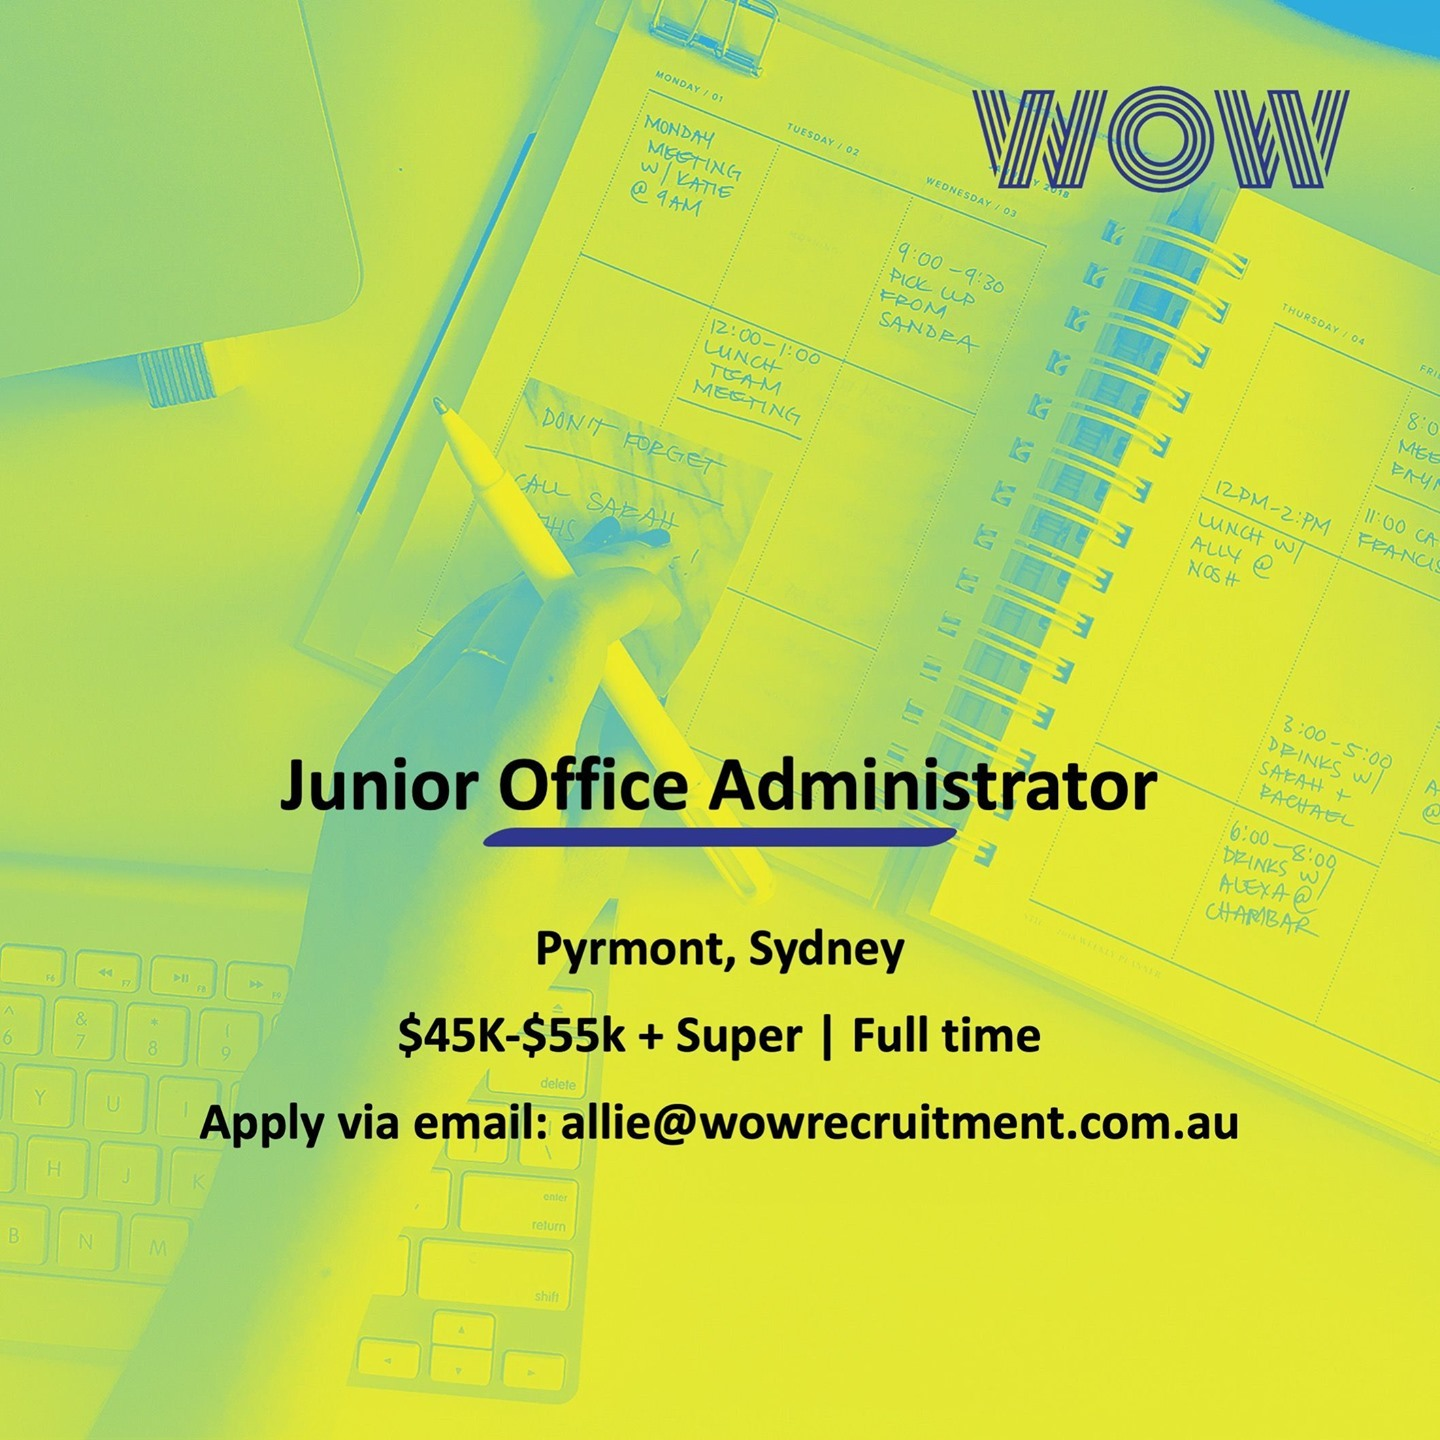 WOW is recruiting a Junior Office Admin to join one of our clients based in Pyrmont! For more info, reach out to our Business Services Recruiter Allie McPhee, allie@wowrecruitment.com.au ️ ️ ️